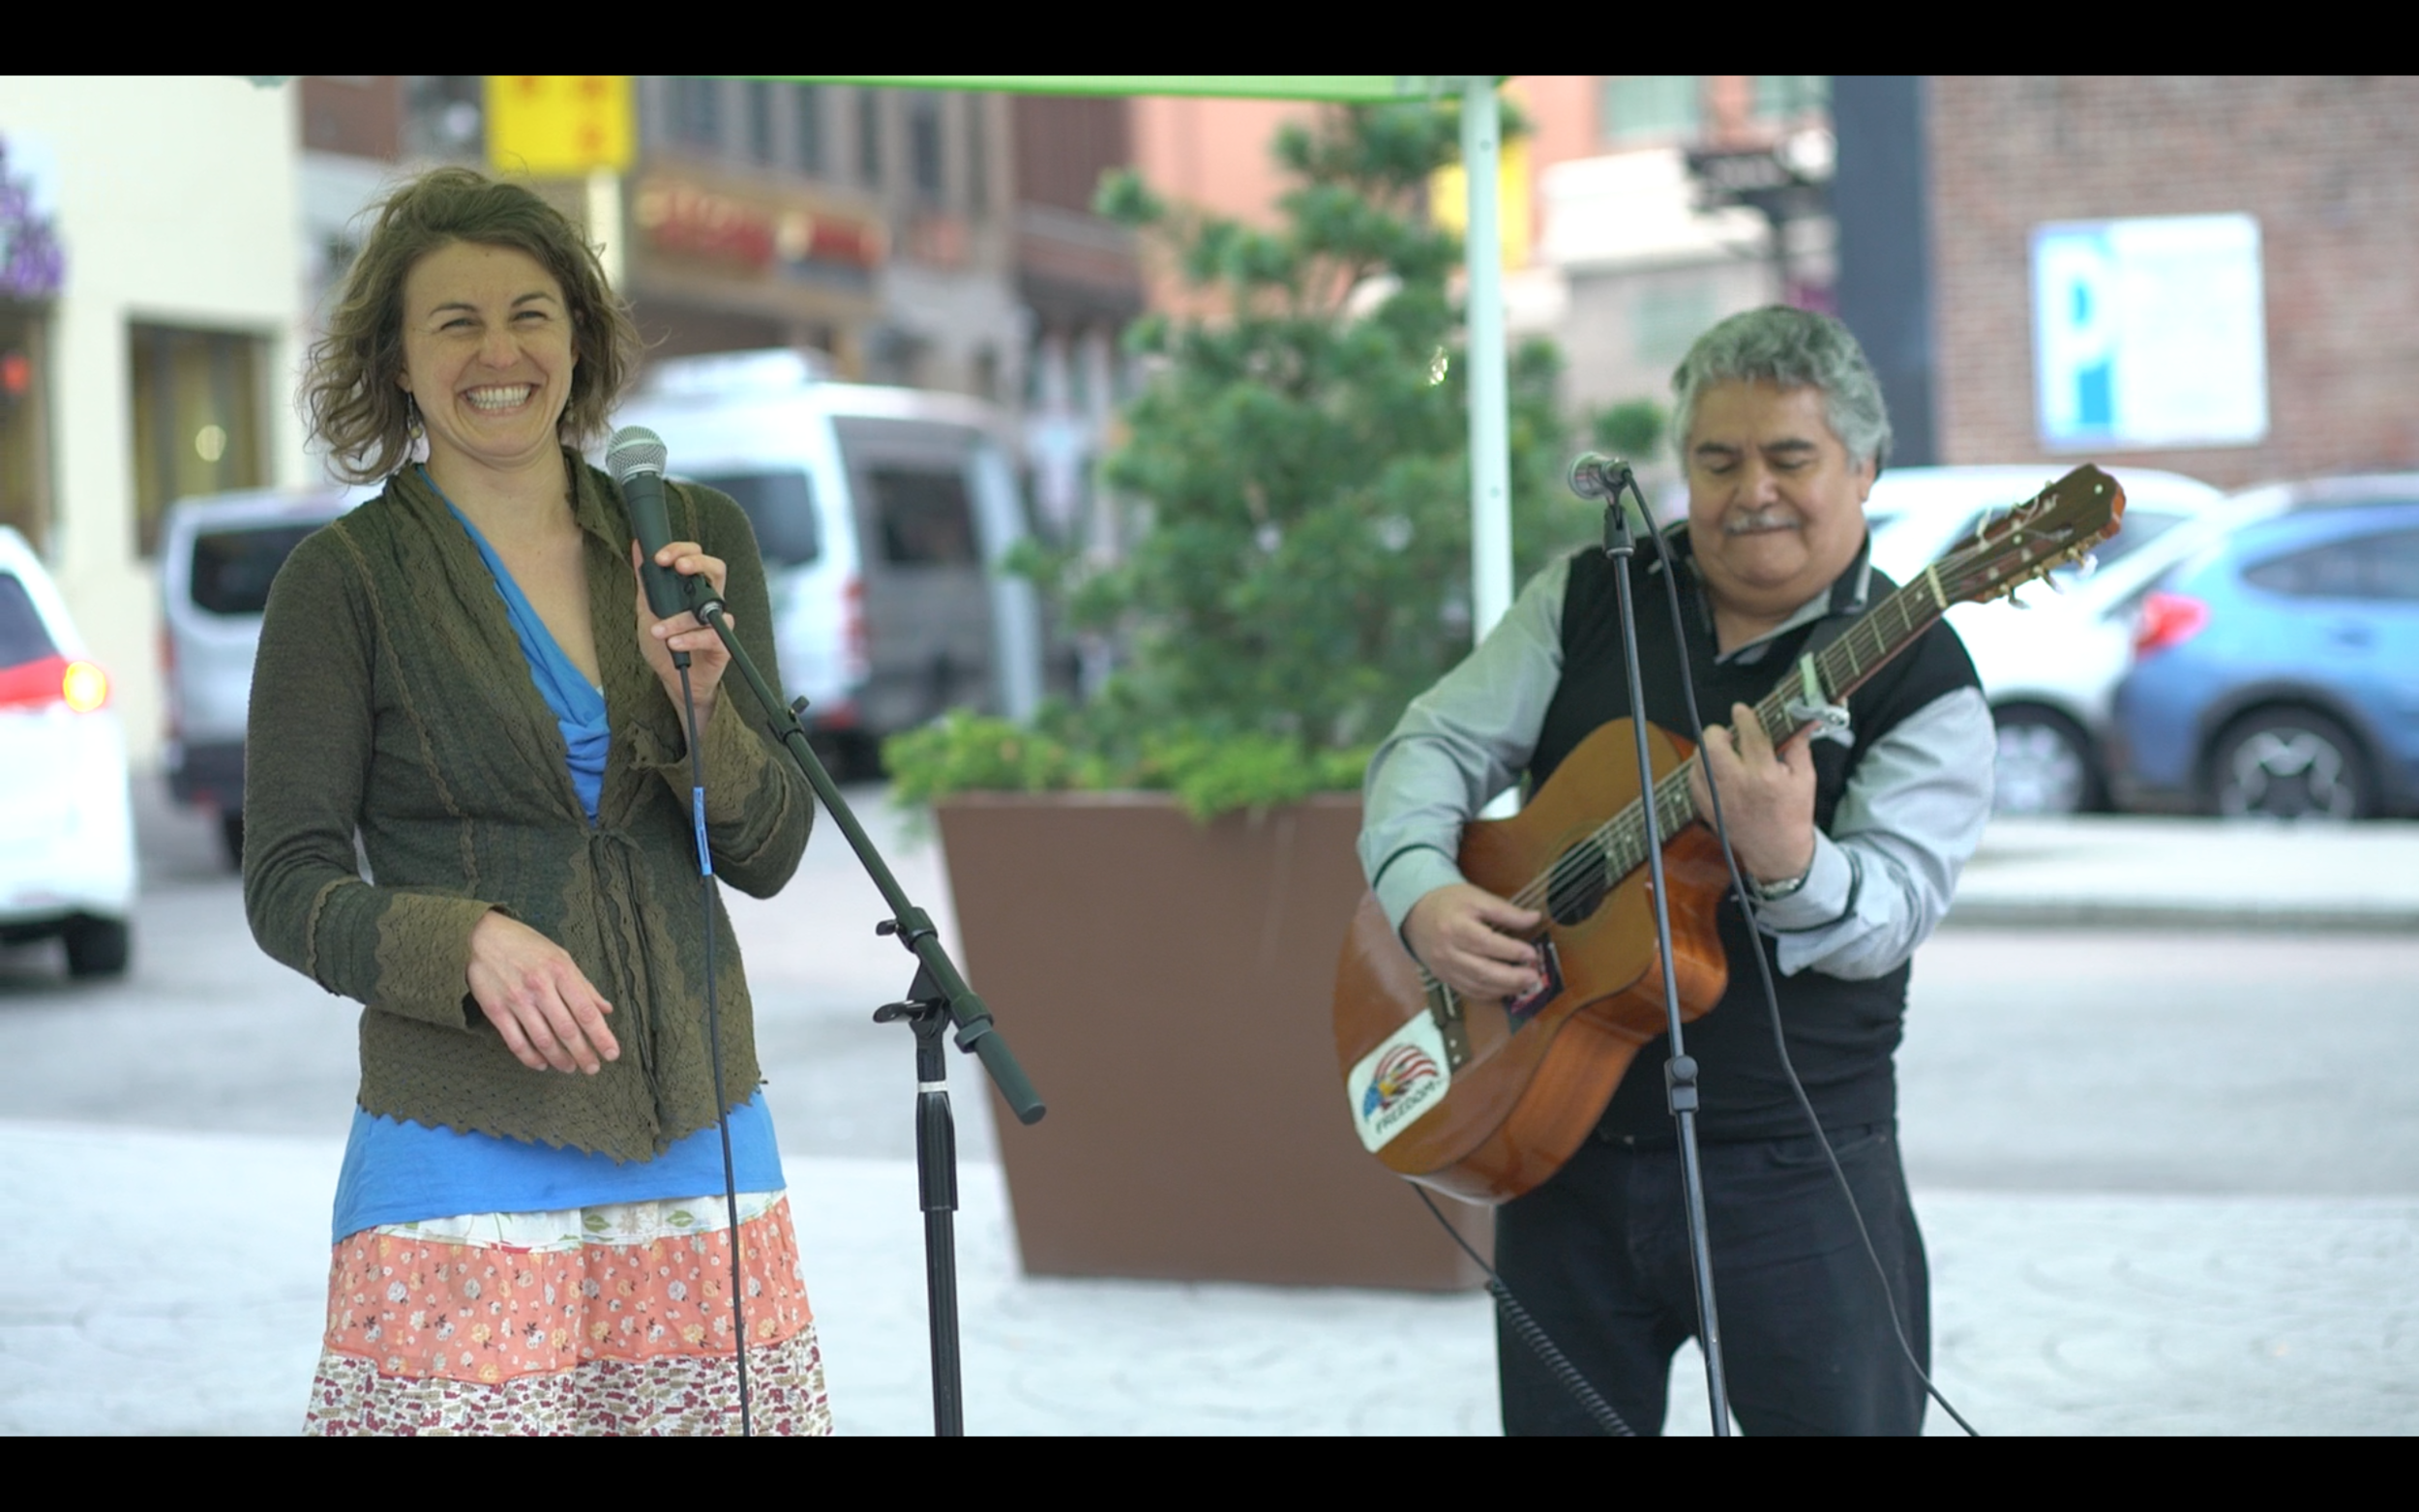 Julie Kurtz, graduate student at Tufts, shares an impromptu song with Cesar del Cid (of Guatemala and Boston) at the International Song Exchange, Chinatown Gate/Rose Kennedy Greenway park.